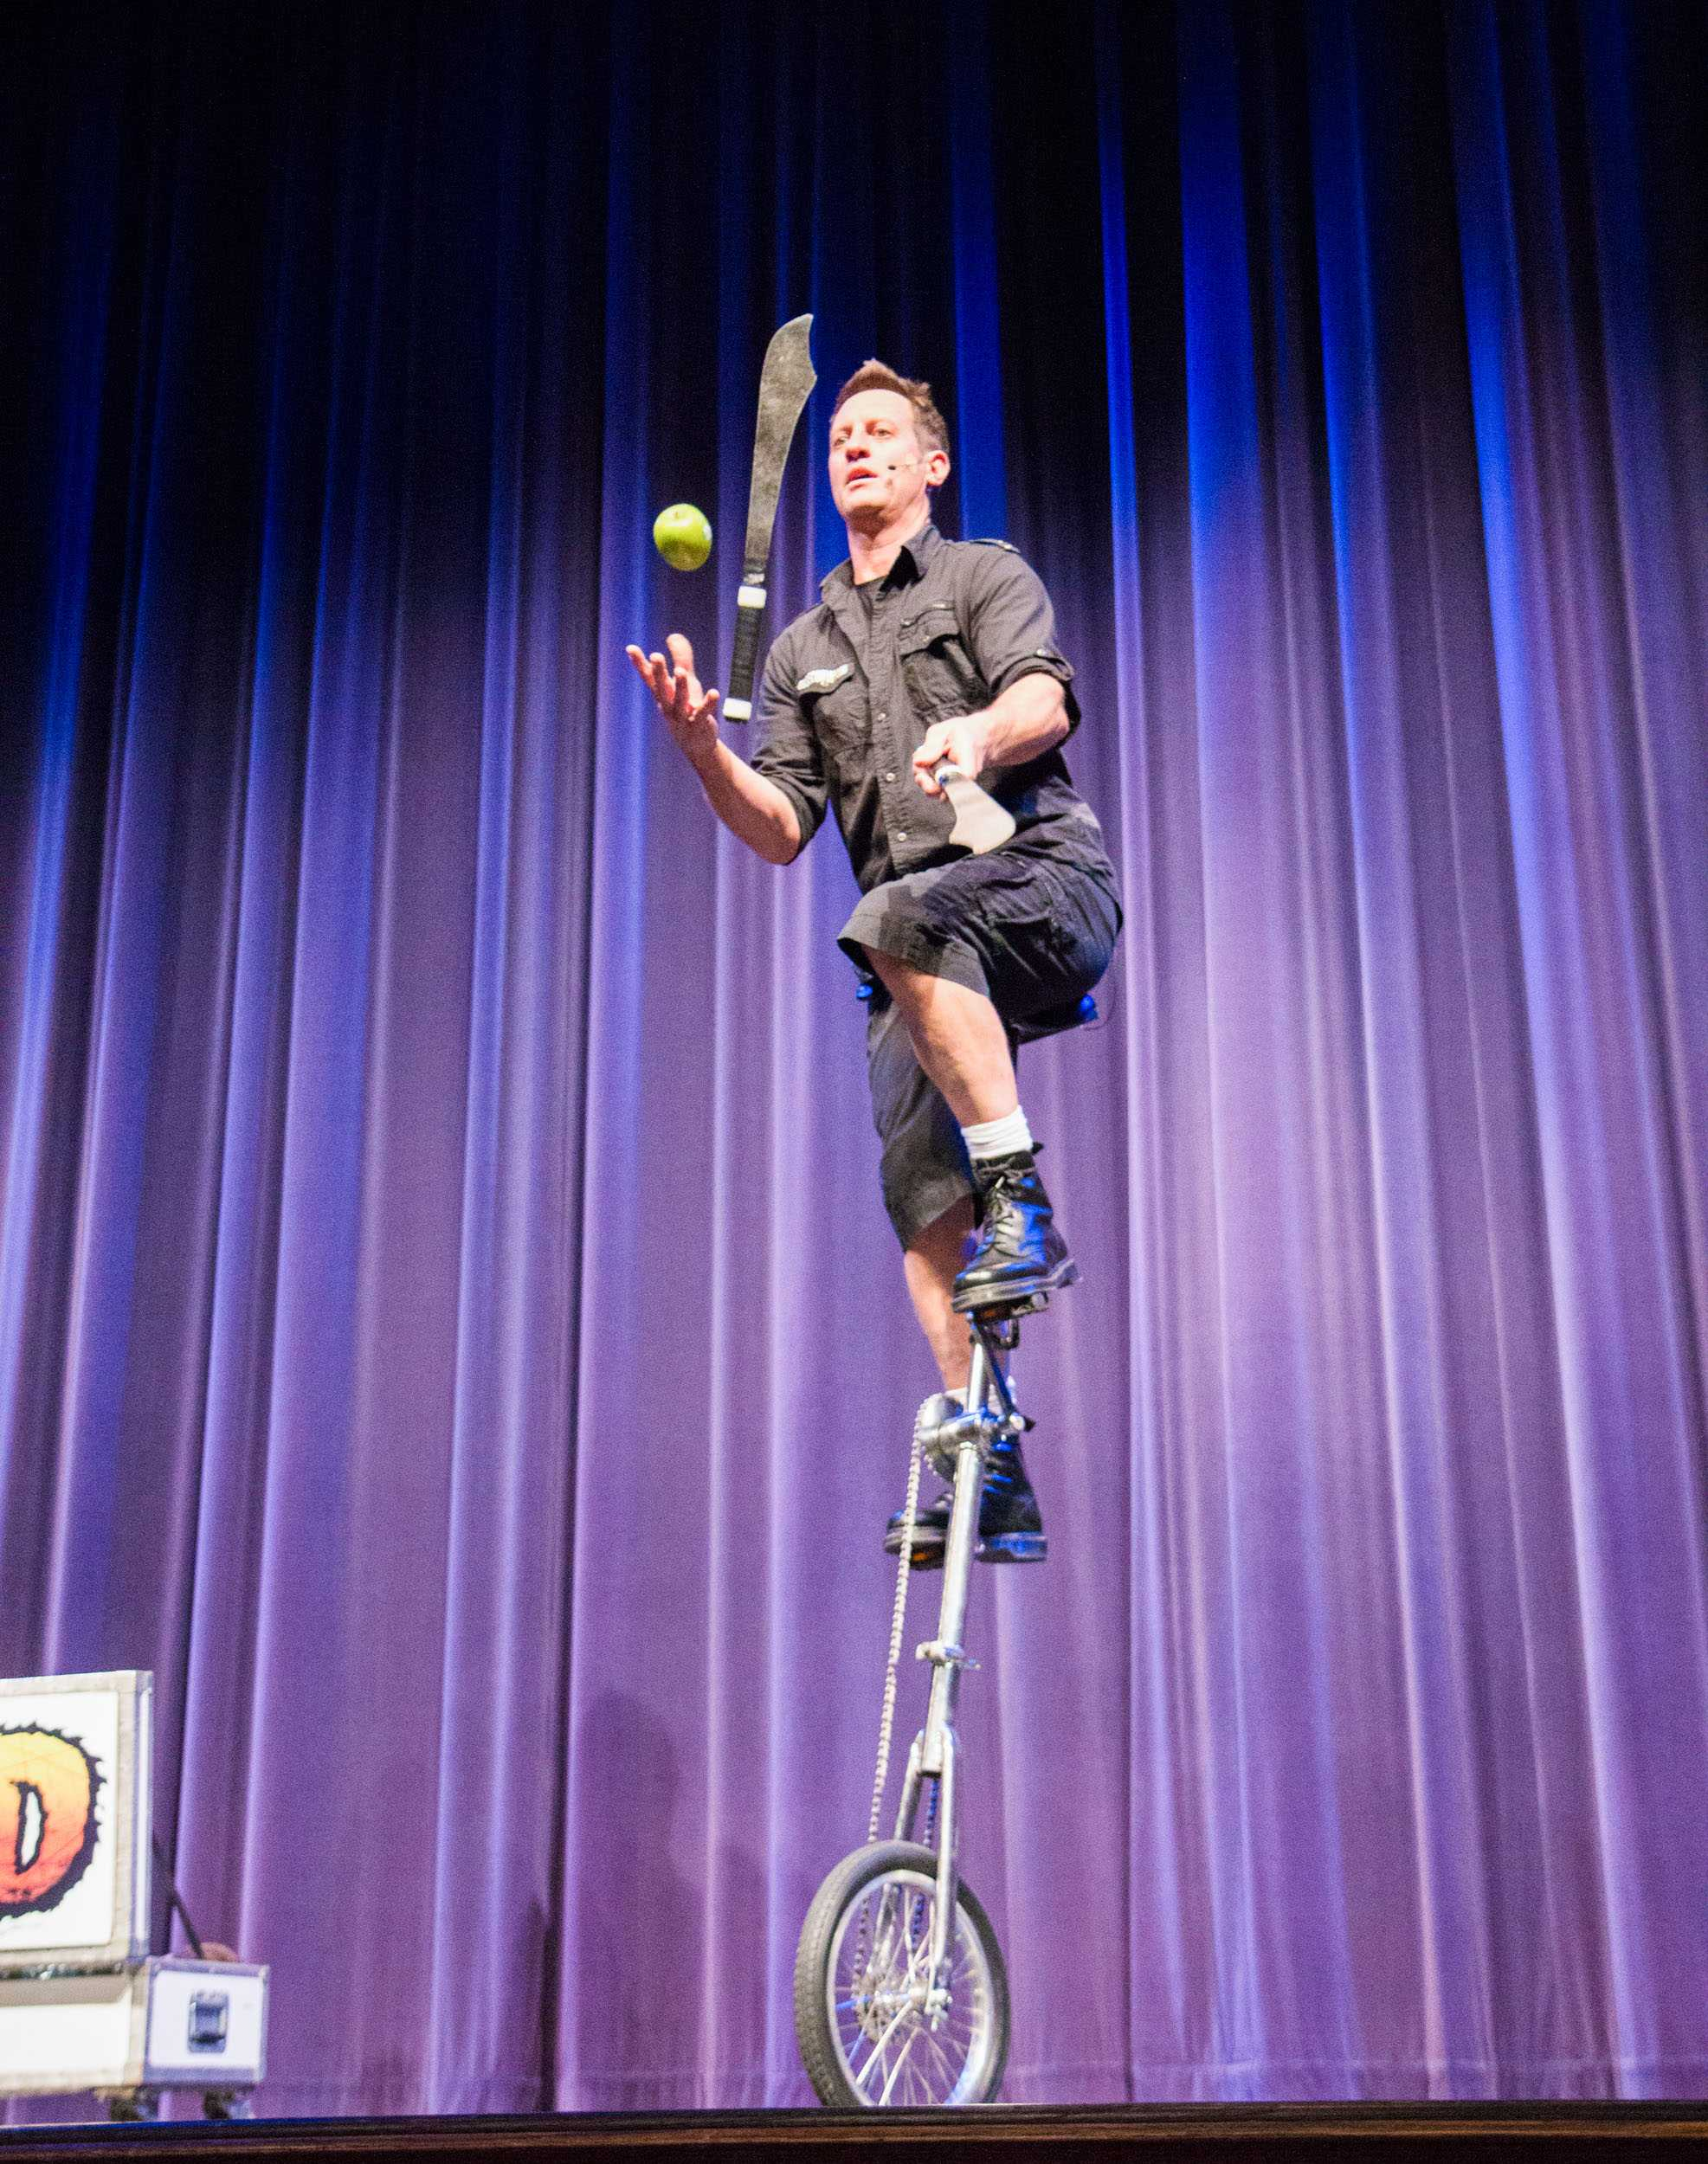 Mad Chad juggles two knives and an apple while riding a unicycle during his show at the CAC Theater Saturday night.